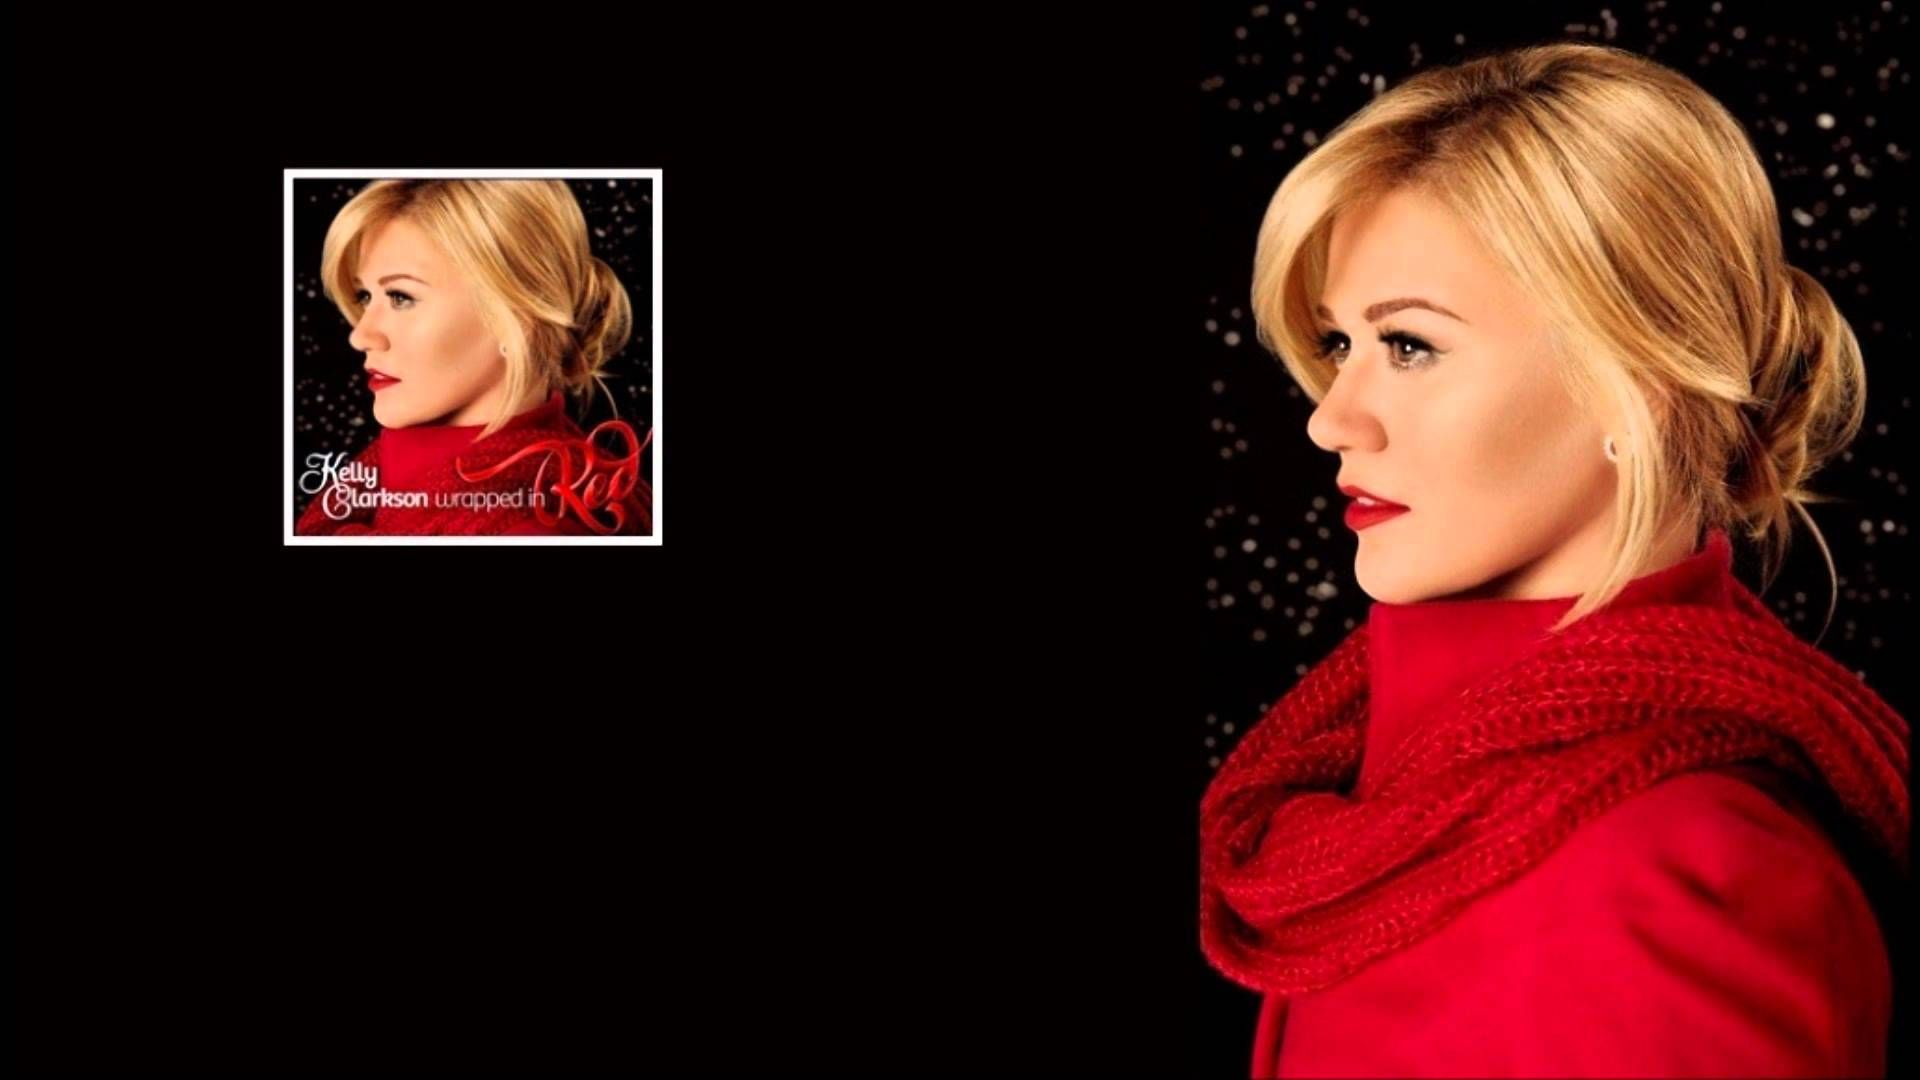 Kelly Clarkson - Wrapped In Red (Full Album) 1. Wrapped In Red 00:00 ...